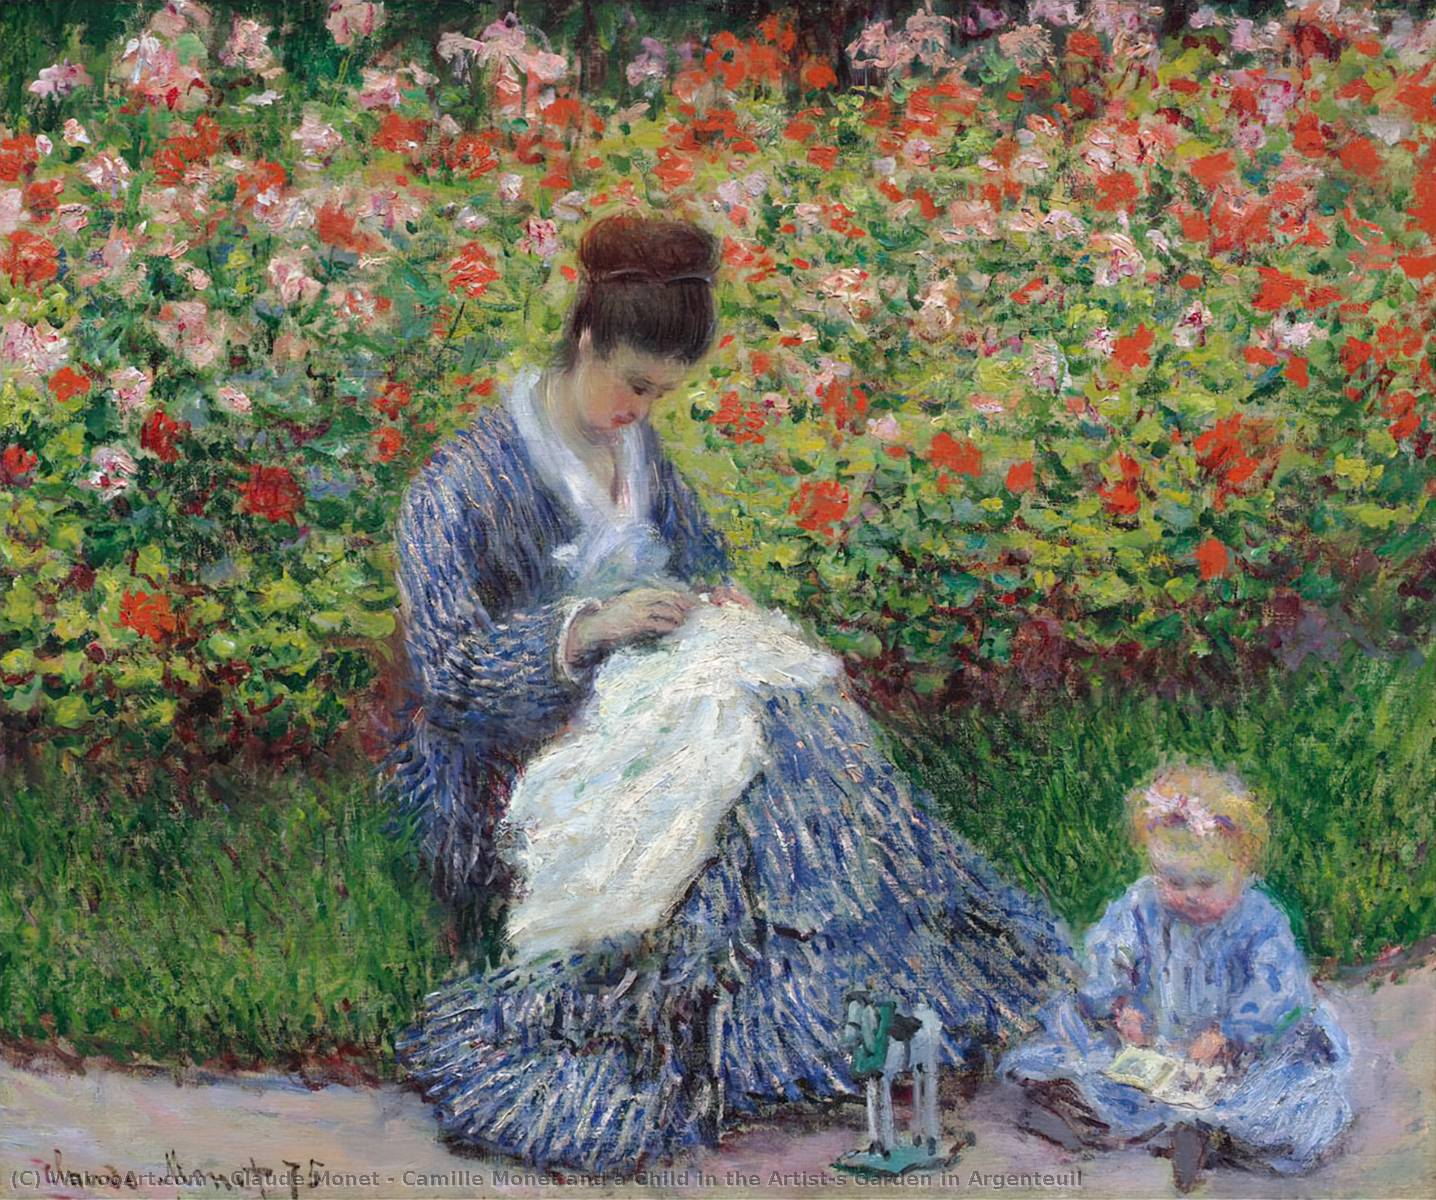 Buy Museum Art Reproductions Impressionism | Camille Monet and a Child in the Artist's Garden in Argenteuil by Claude Monet | TopImpressionists.com